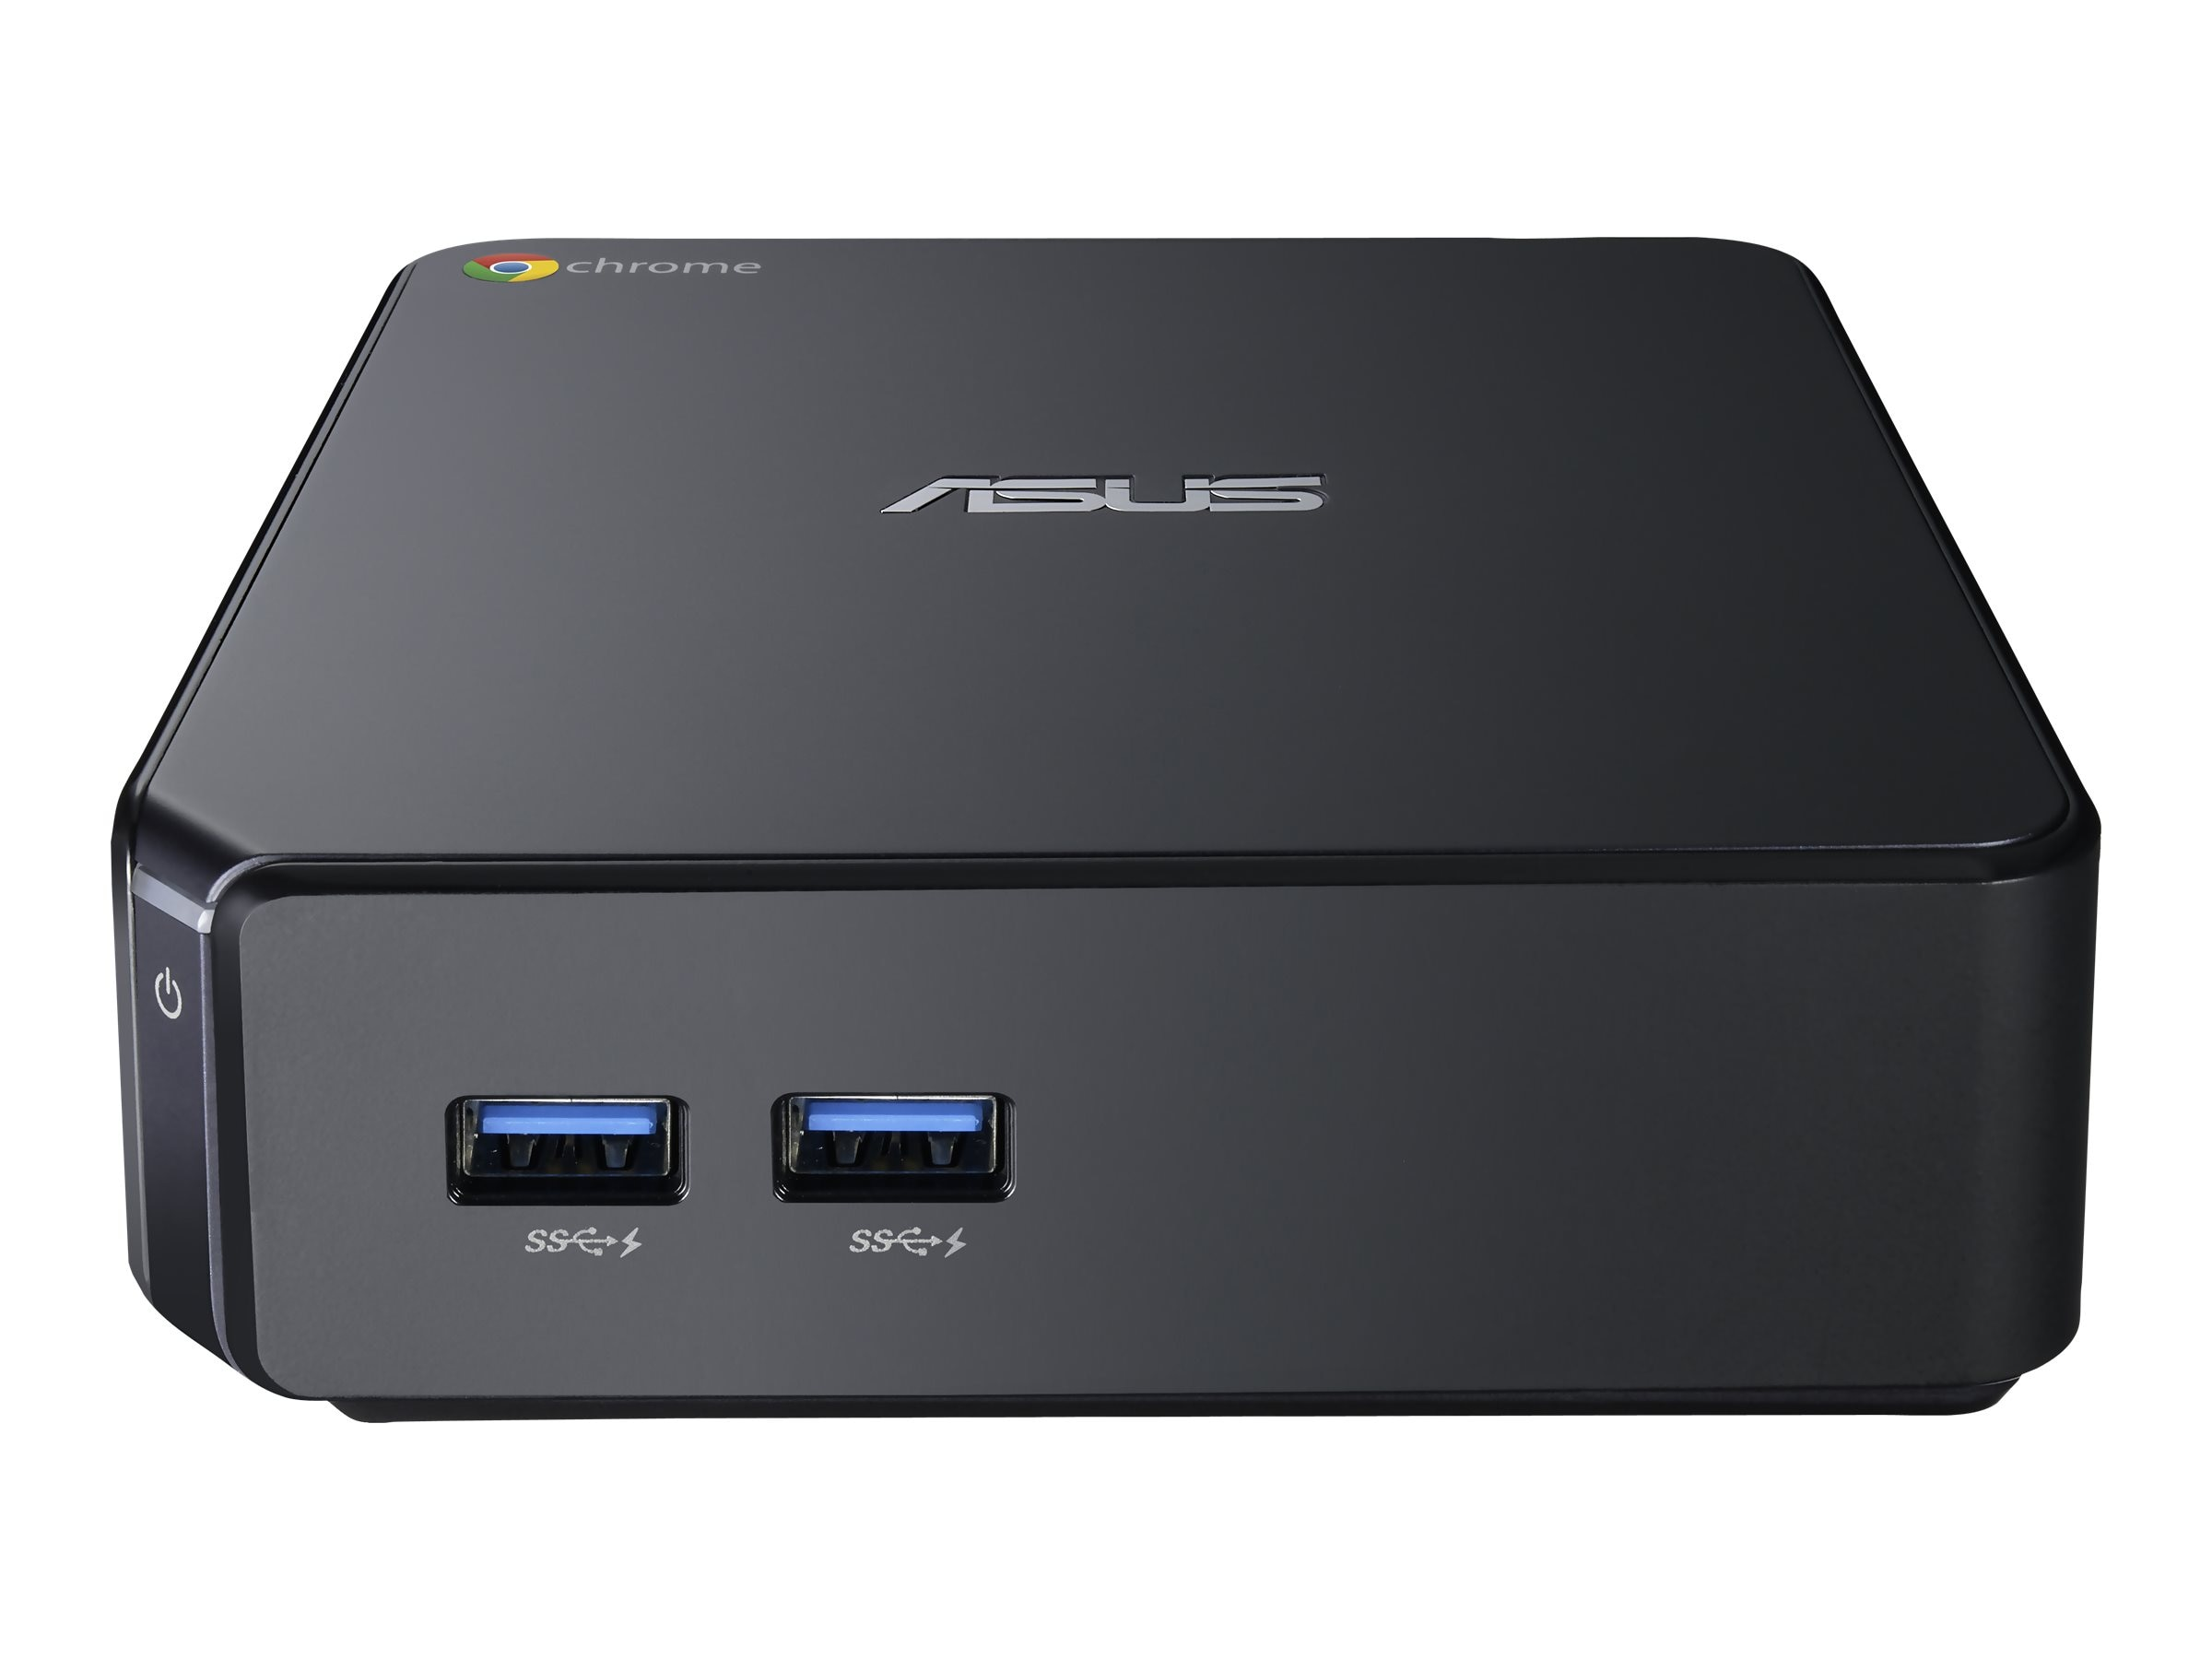 Asus Chromebox M107U Core i3-4010U 1.7GHz 4GB 16GB SSD WL ChromeOS, CHROMEBOX-M107U, 17849086, Desktops